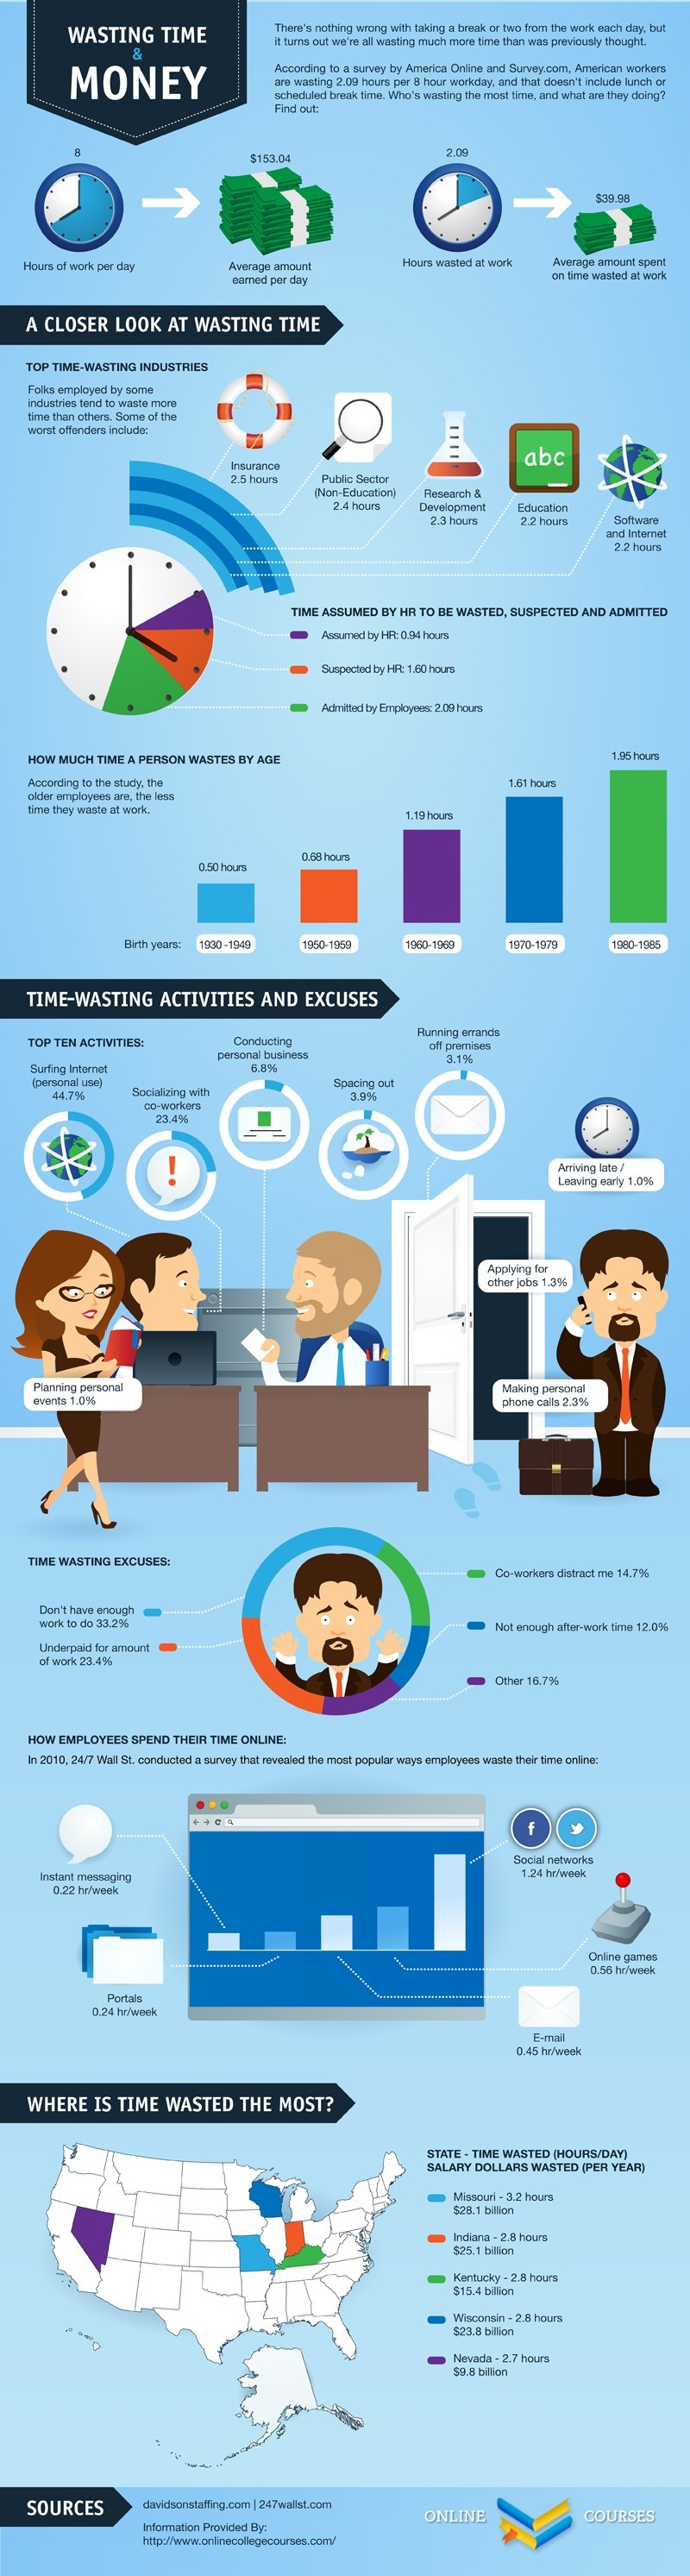 wasting time and money infographic